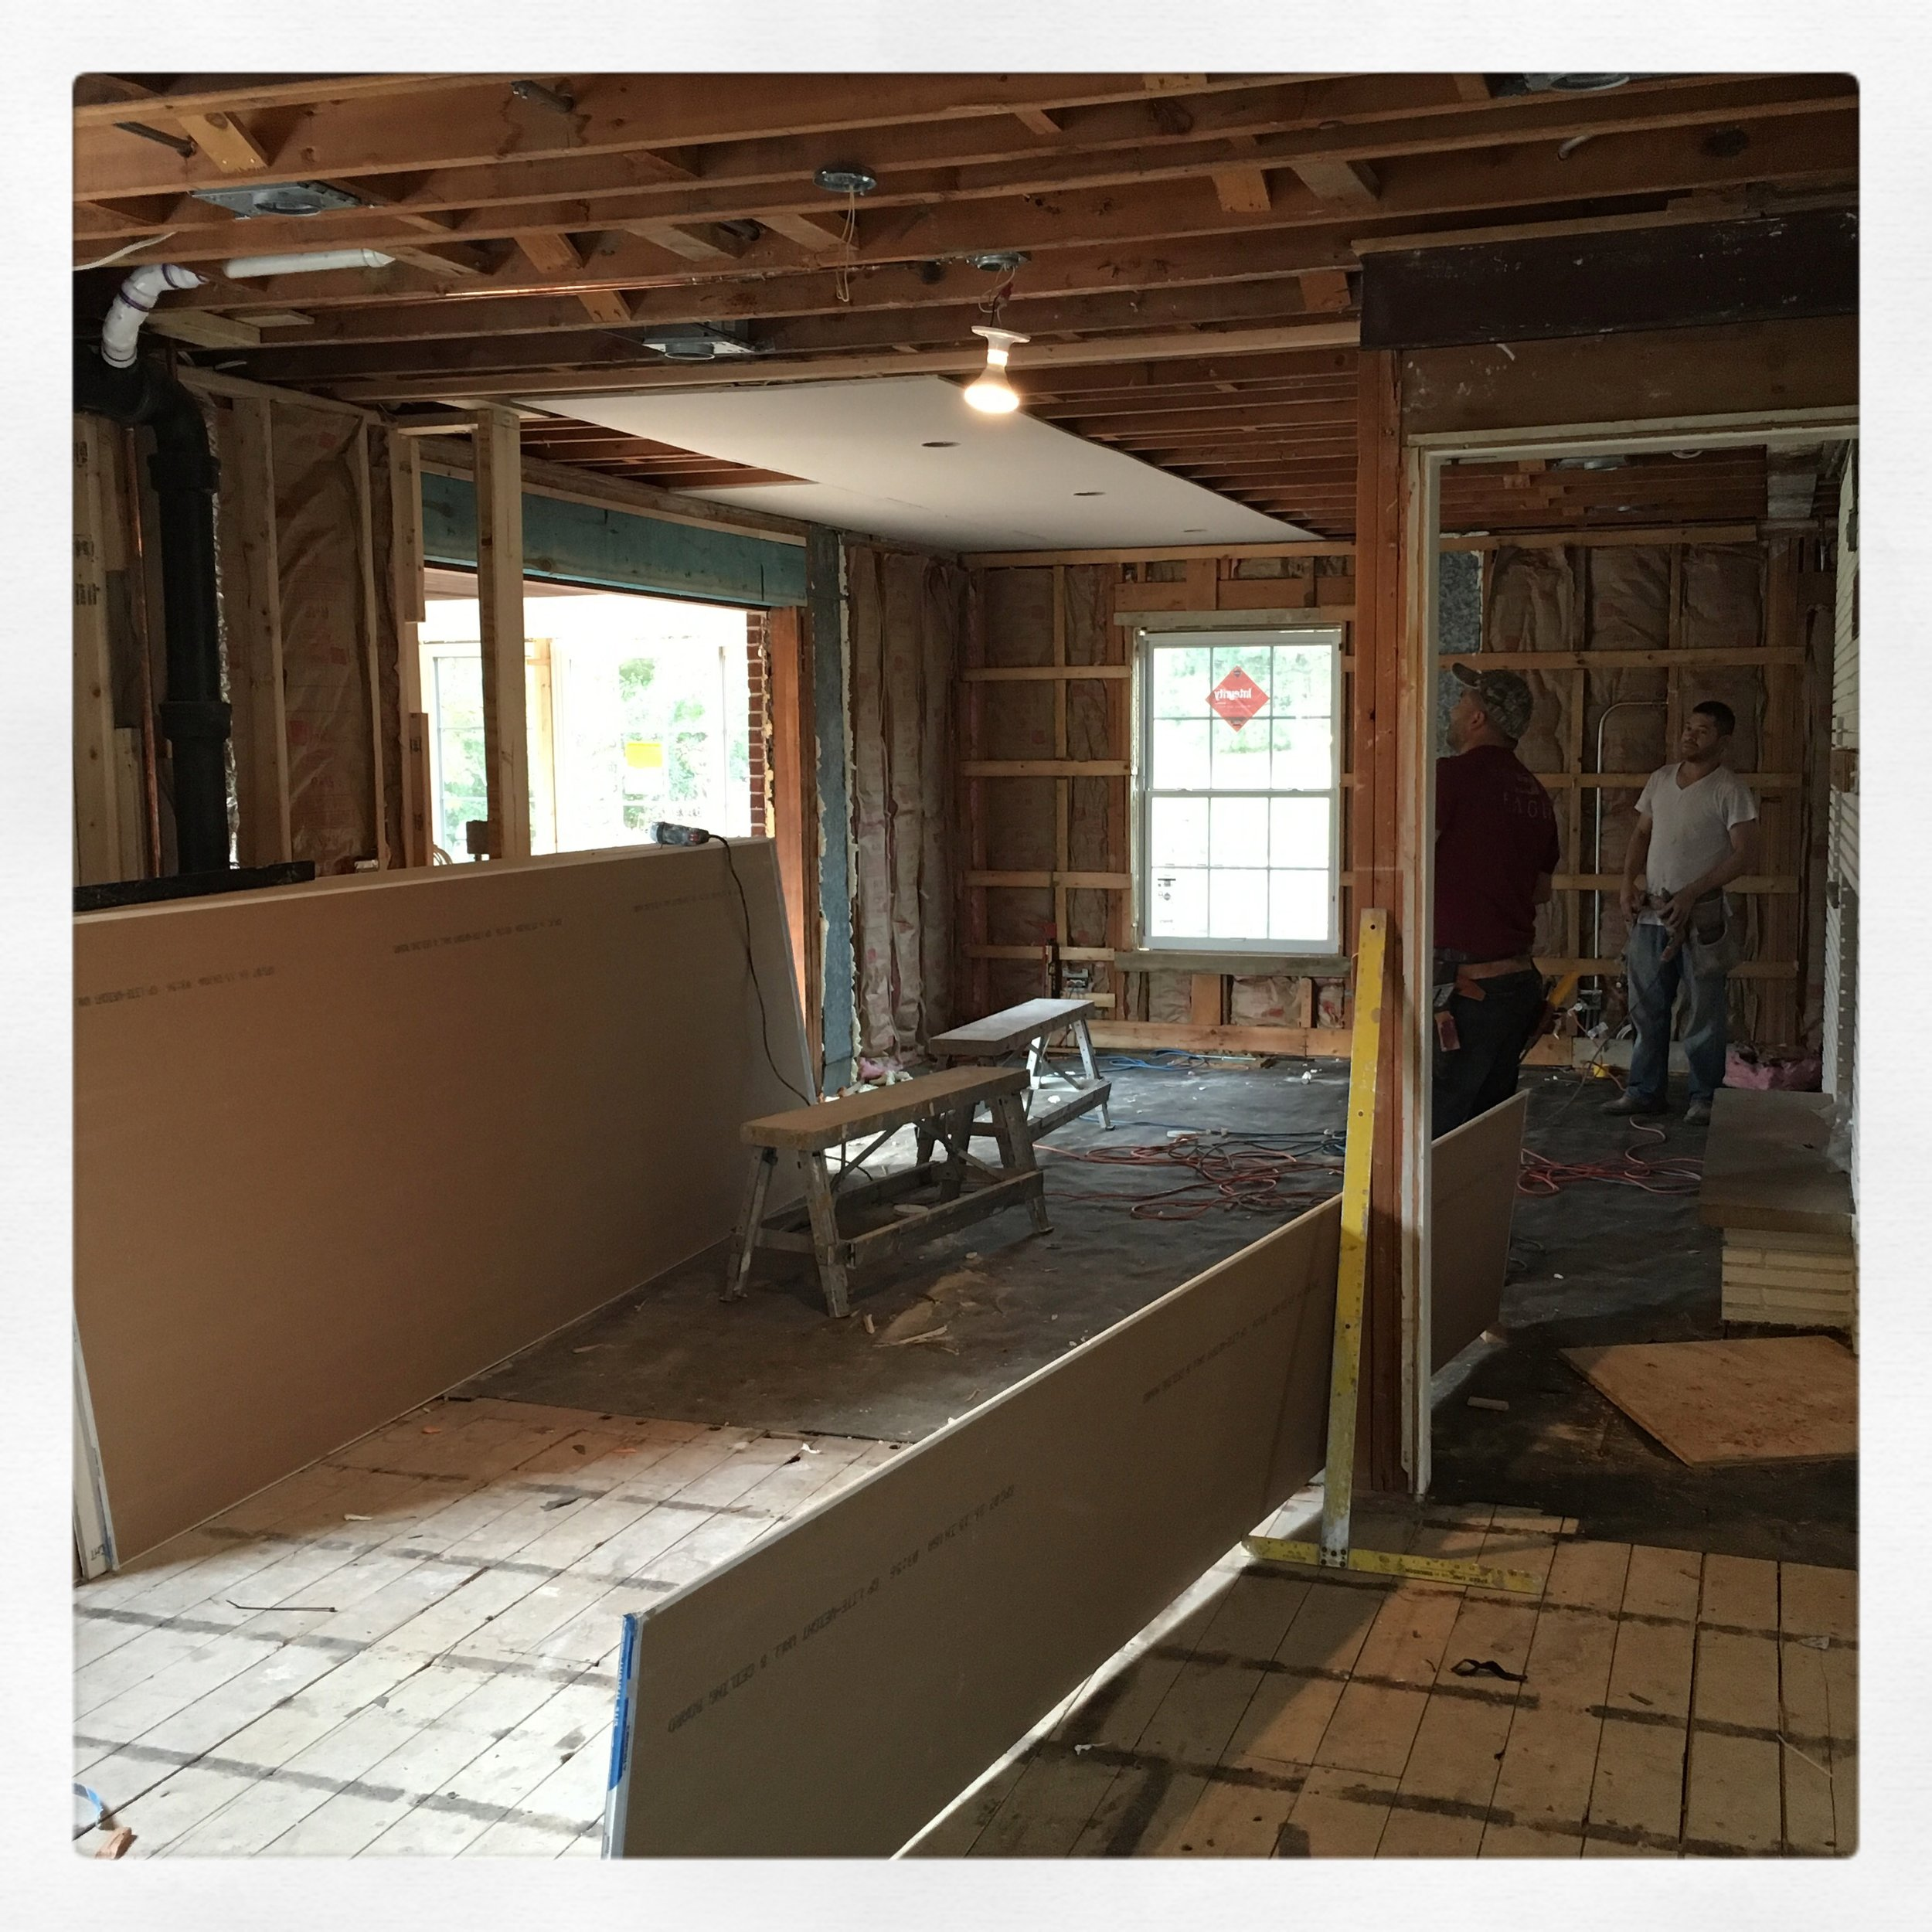 Once all existing HVAC was insulated in exterior walls new structural lintels were added at family room and dining room openings; plumbing was roughed in and modified to meet code; and electrical was roughed in with a freshly added sub panel, it was time for DRYWALL!!